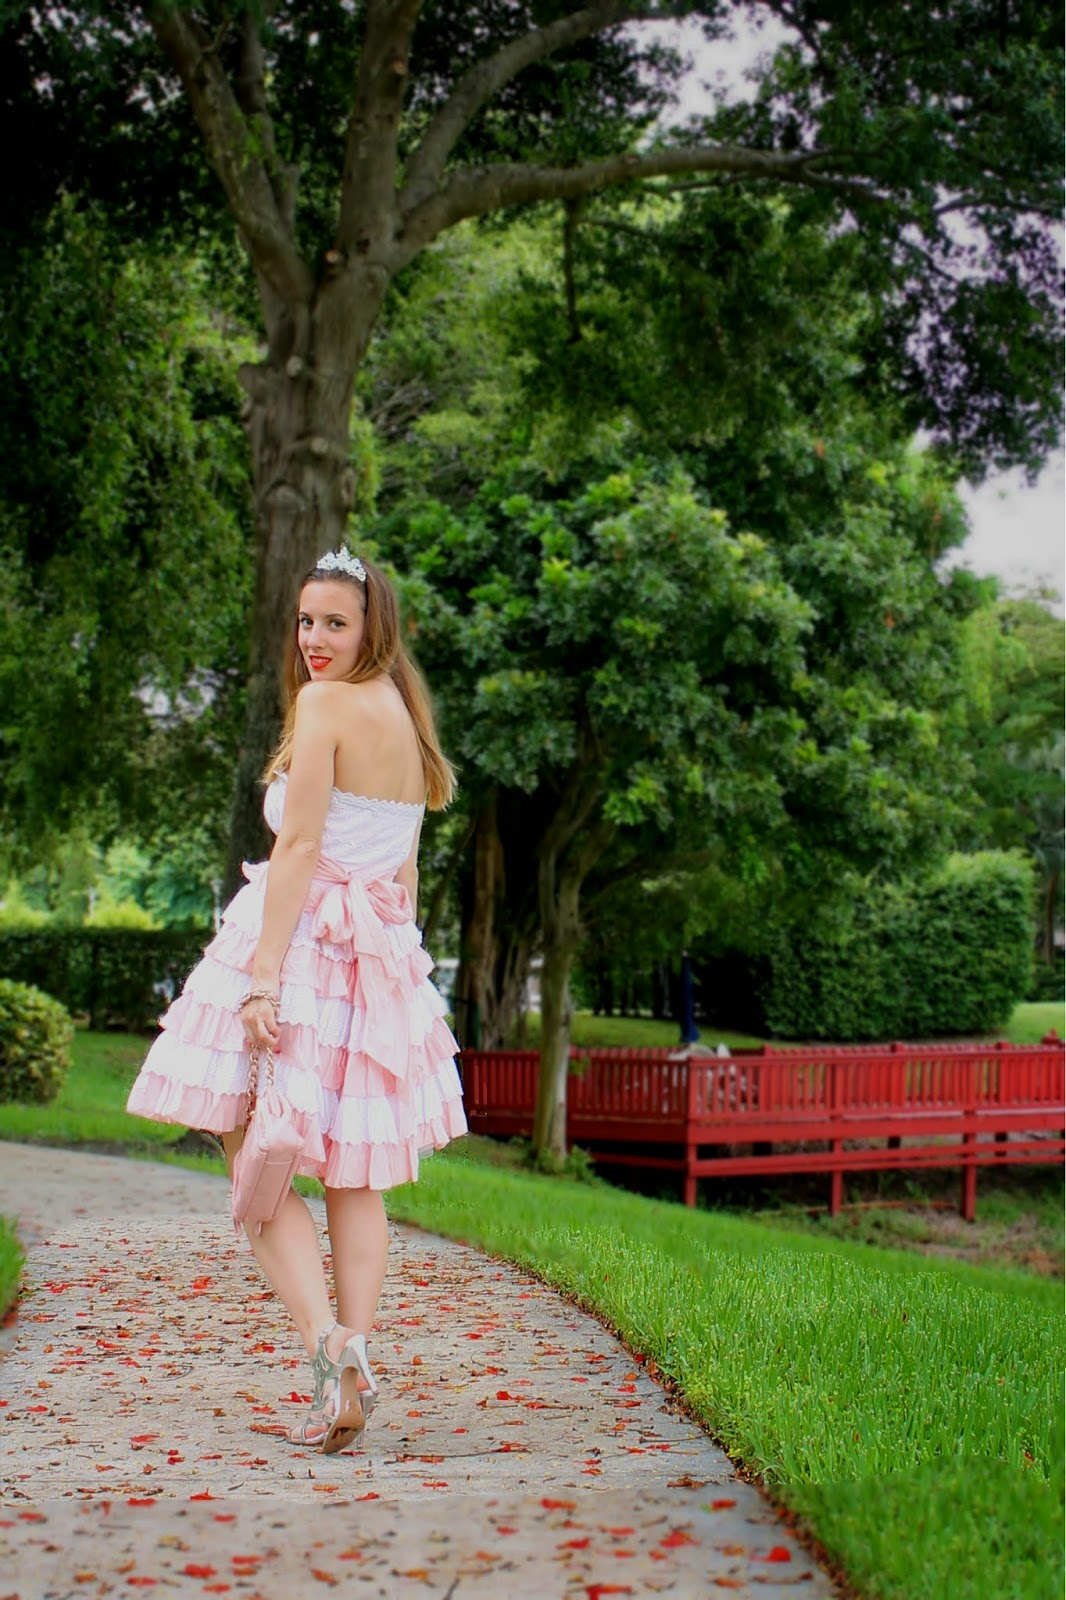 Betsey Johnson, Coach, BCBG, Claire's, Nordstrom, street style, prom fashion, prom dress, ruffles, Miami fashion blogger